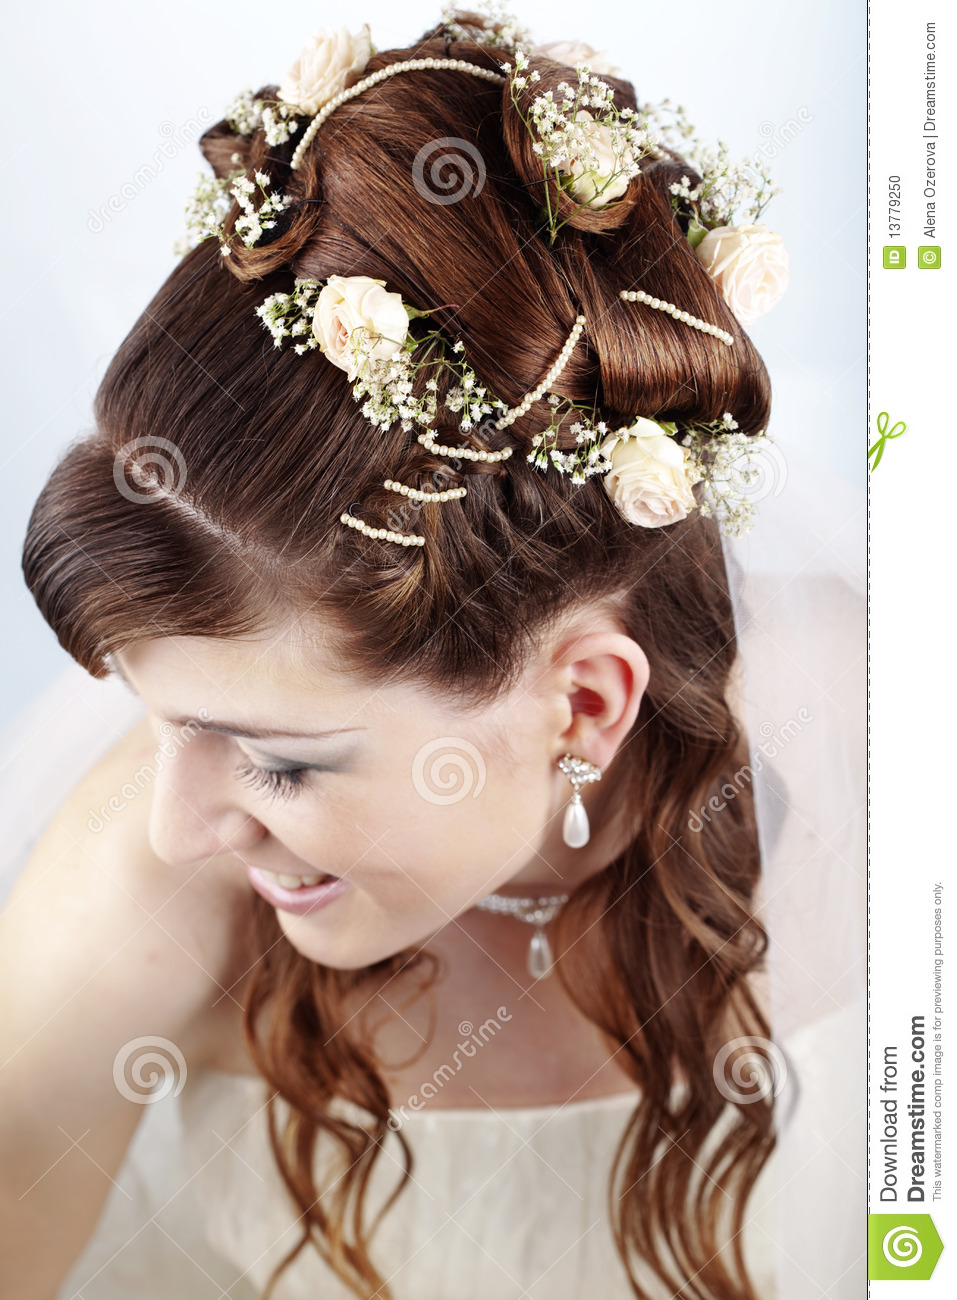 bridal hairstyle stock photo. image of style, roses, pretty - 13779250